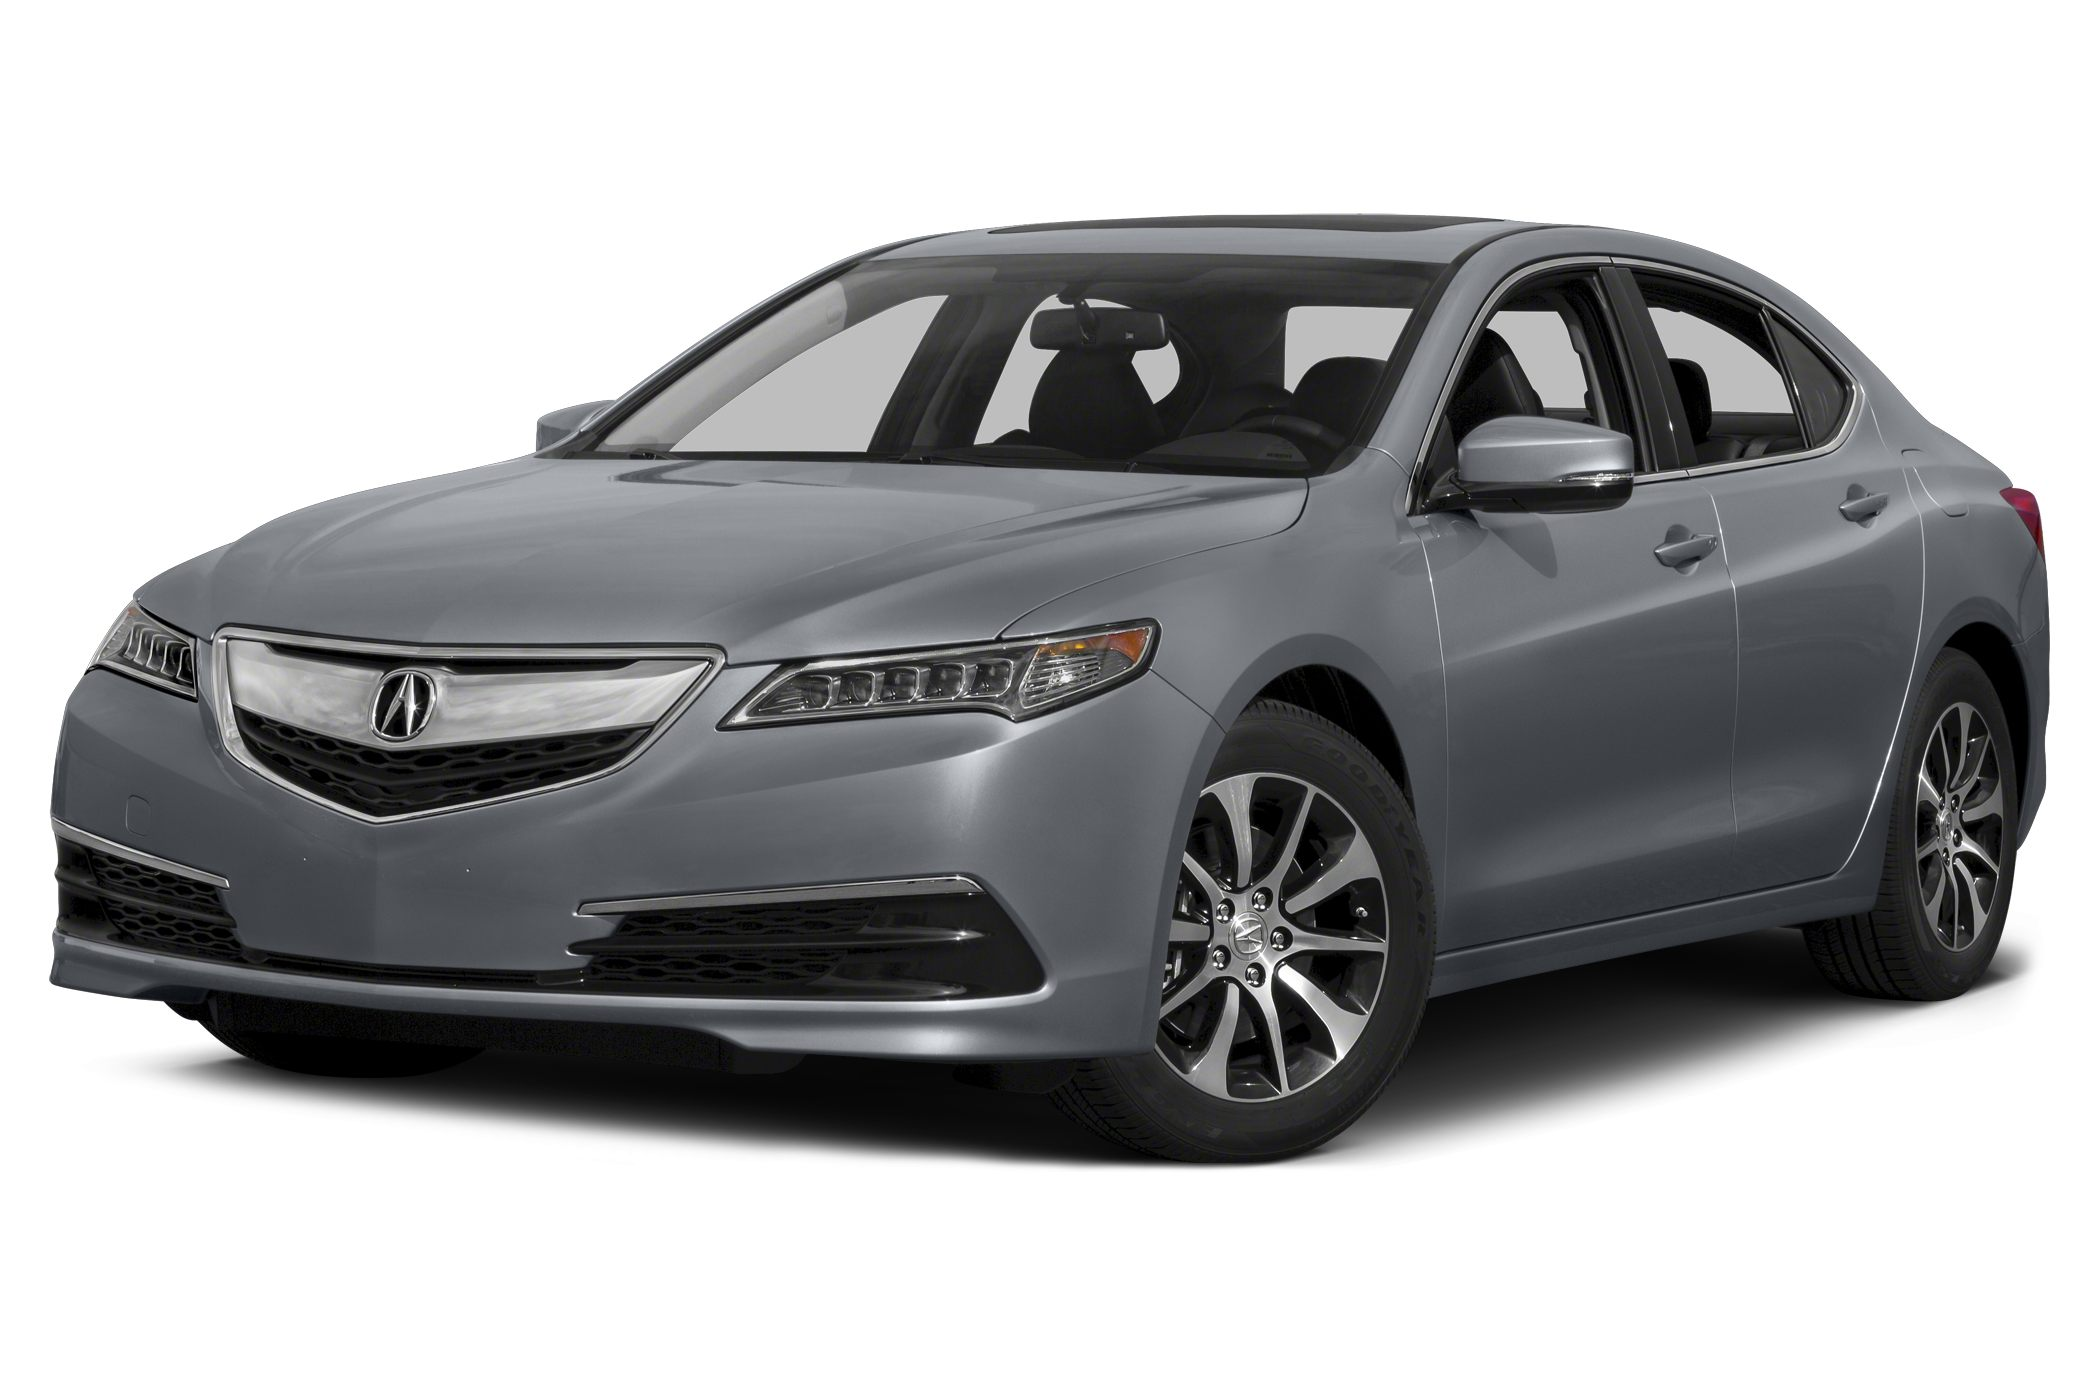 2015 Acura TLX Base Sedan for sale in Huntington for $32,365 with 10 miles.